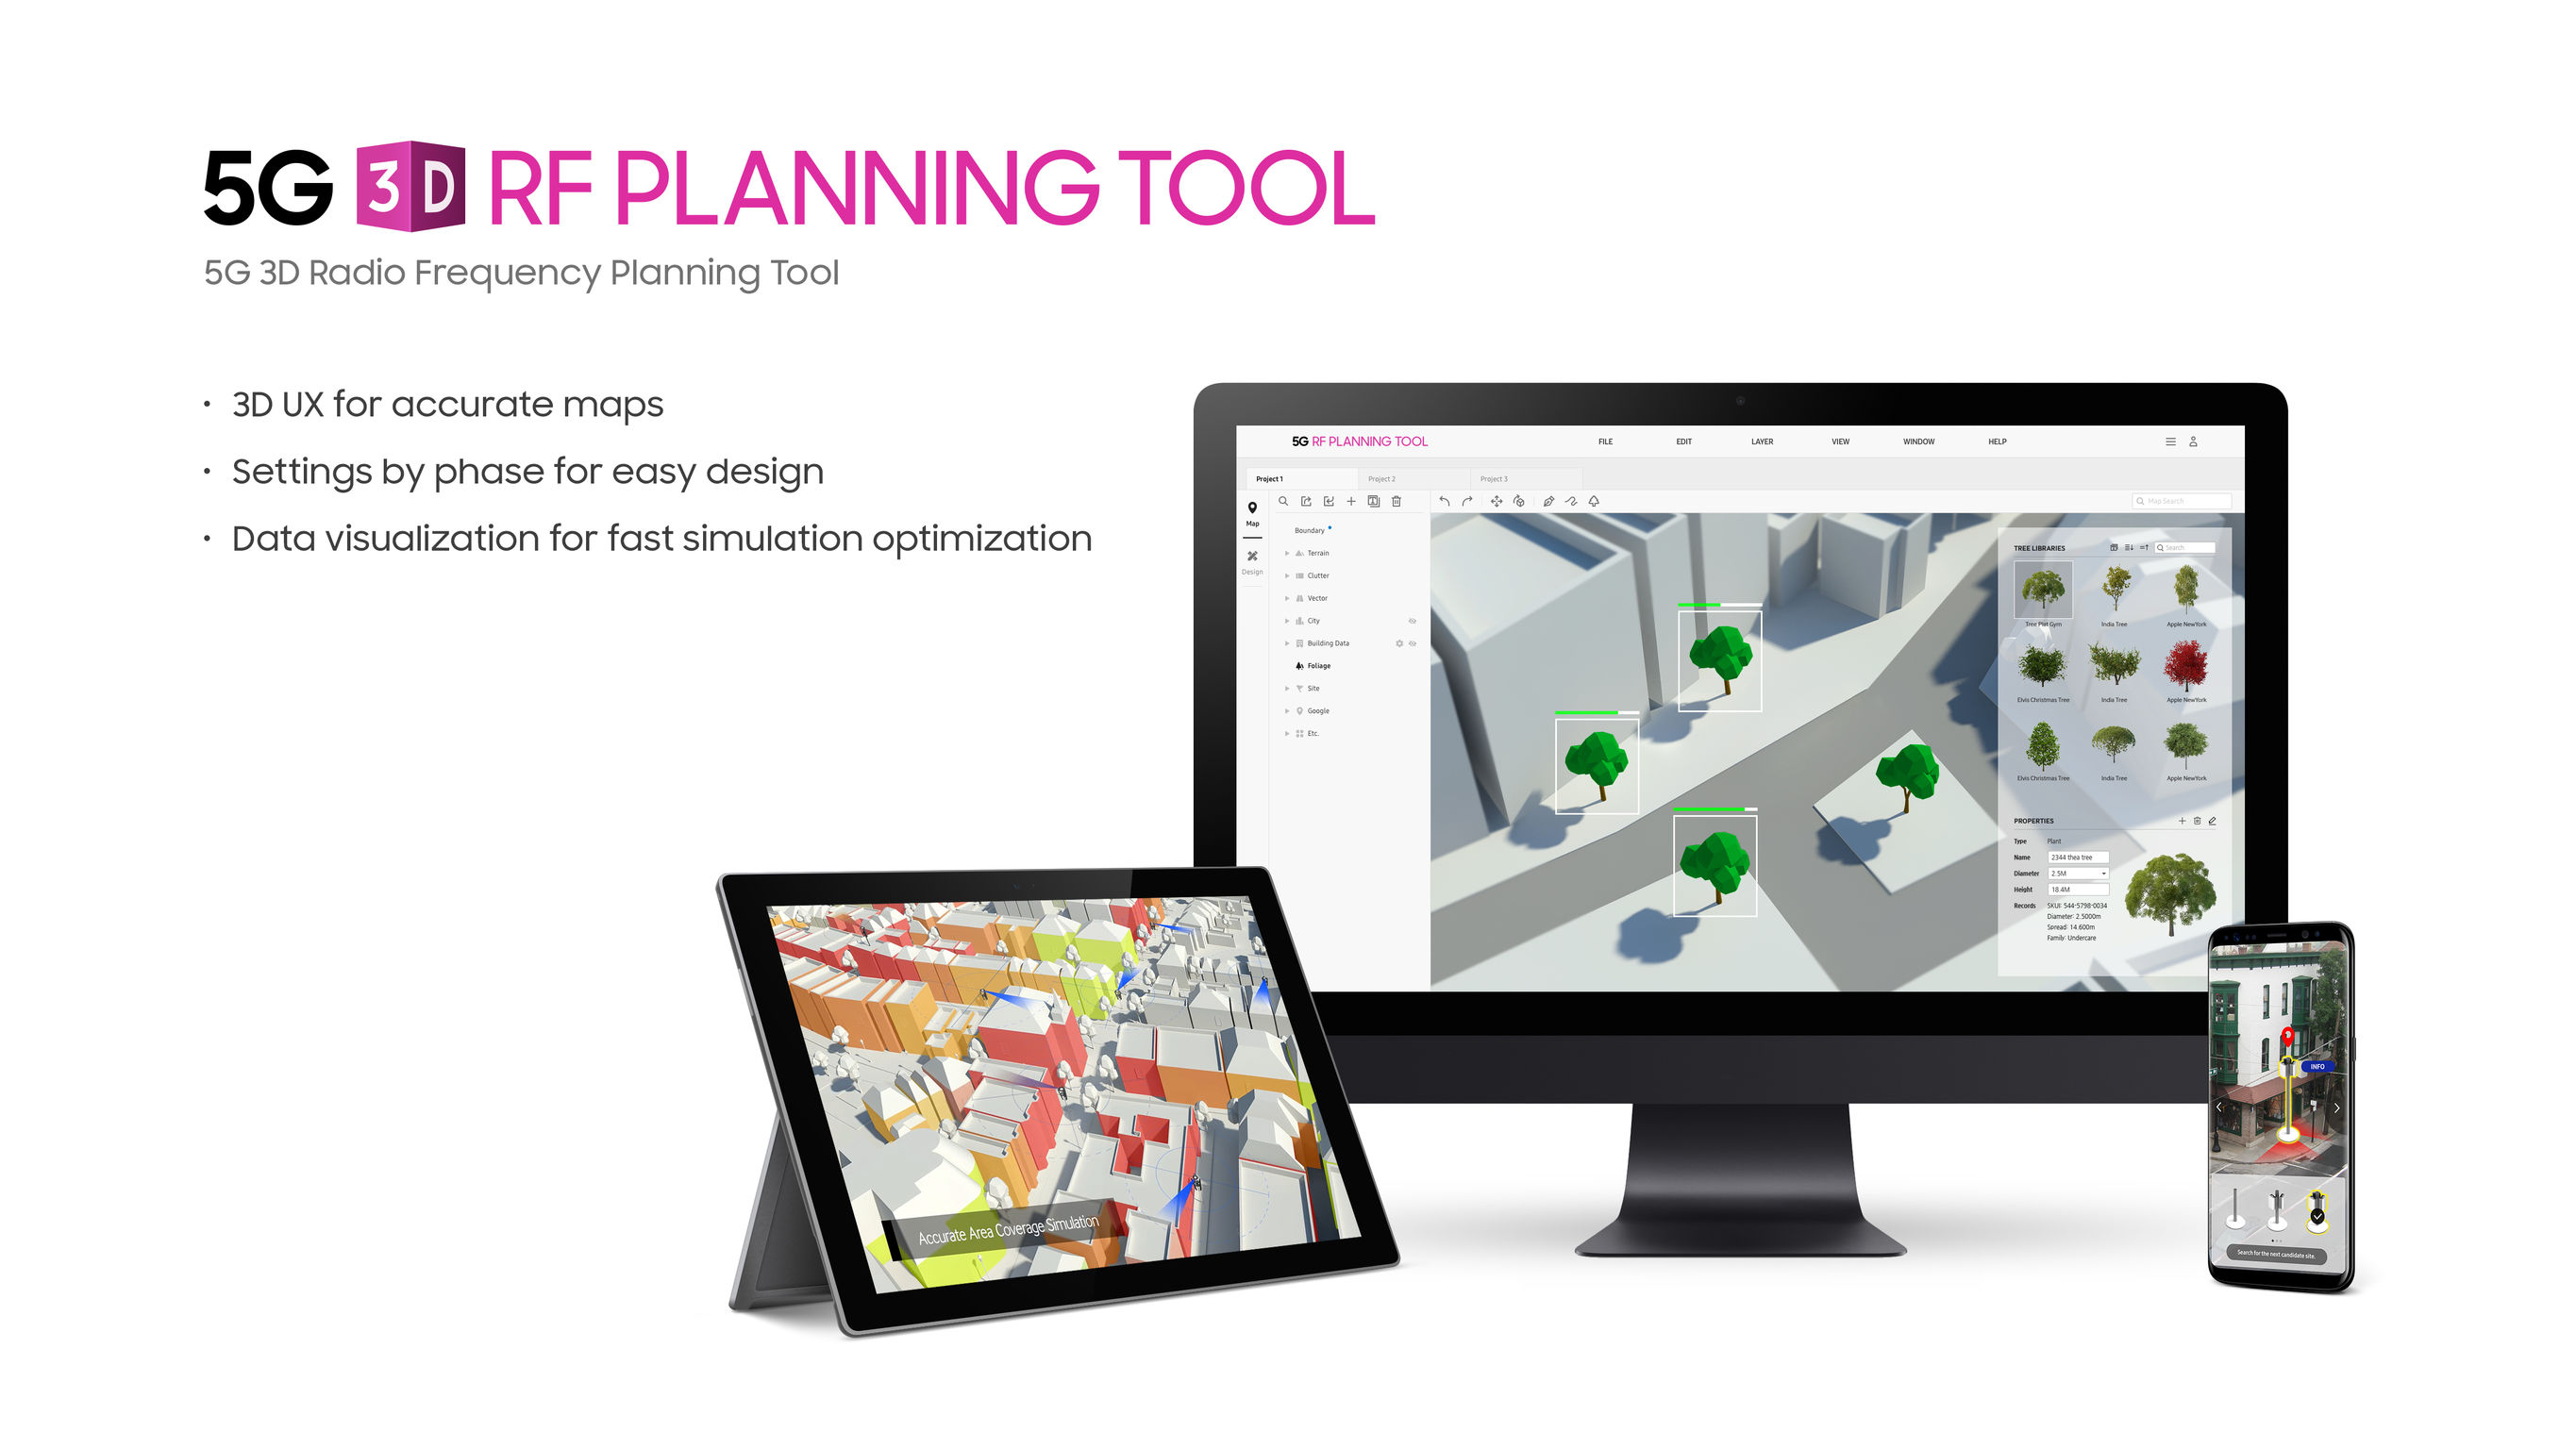 5G 3D RF Planning Tools | iF WORLD DESIGN GUIDE